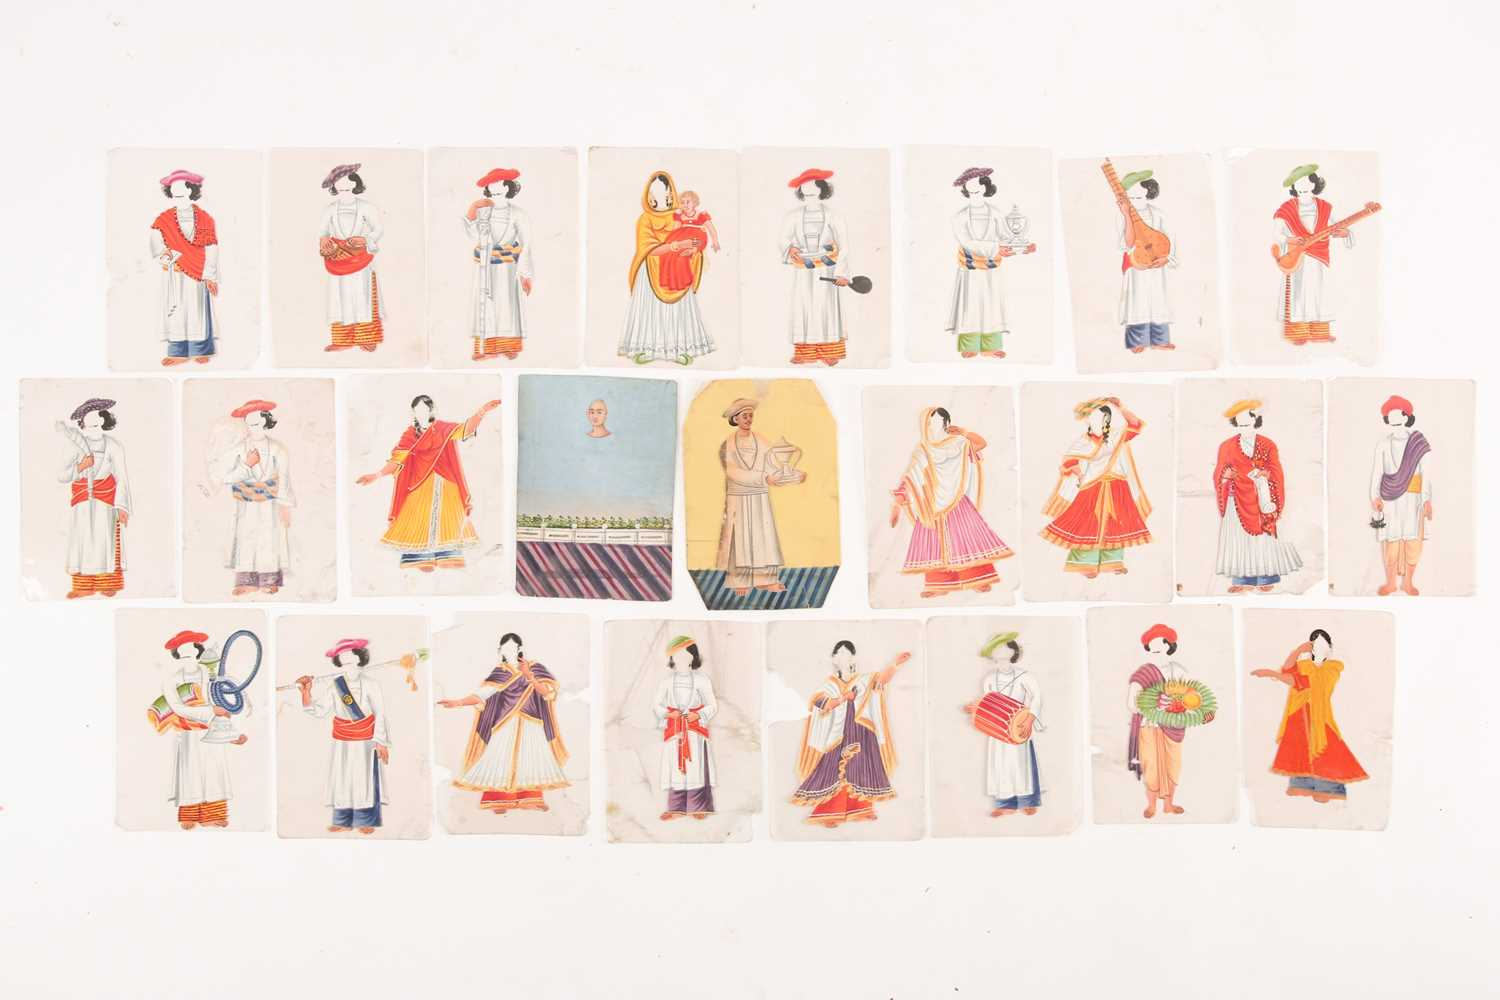 Twenty three Indian Company School mica studies of costumes, 19th century, depicting male and female